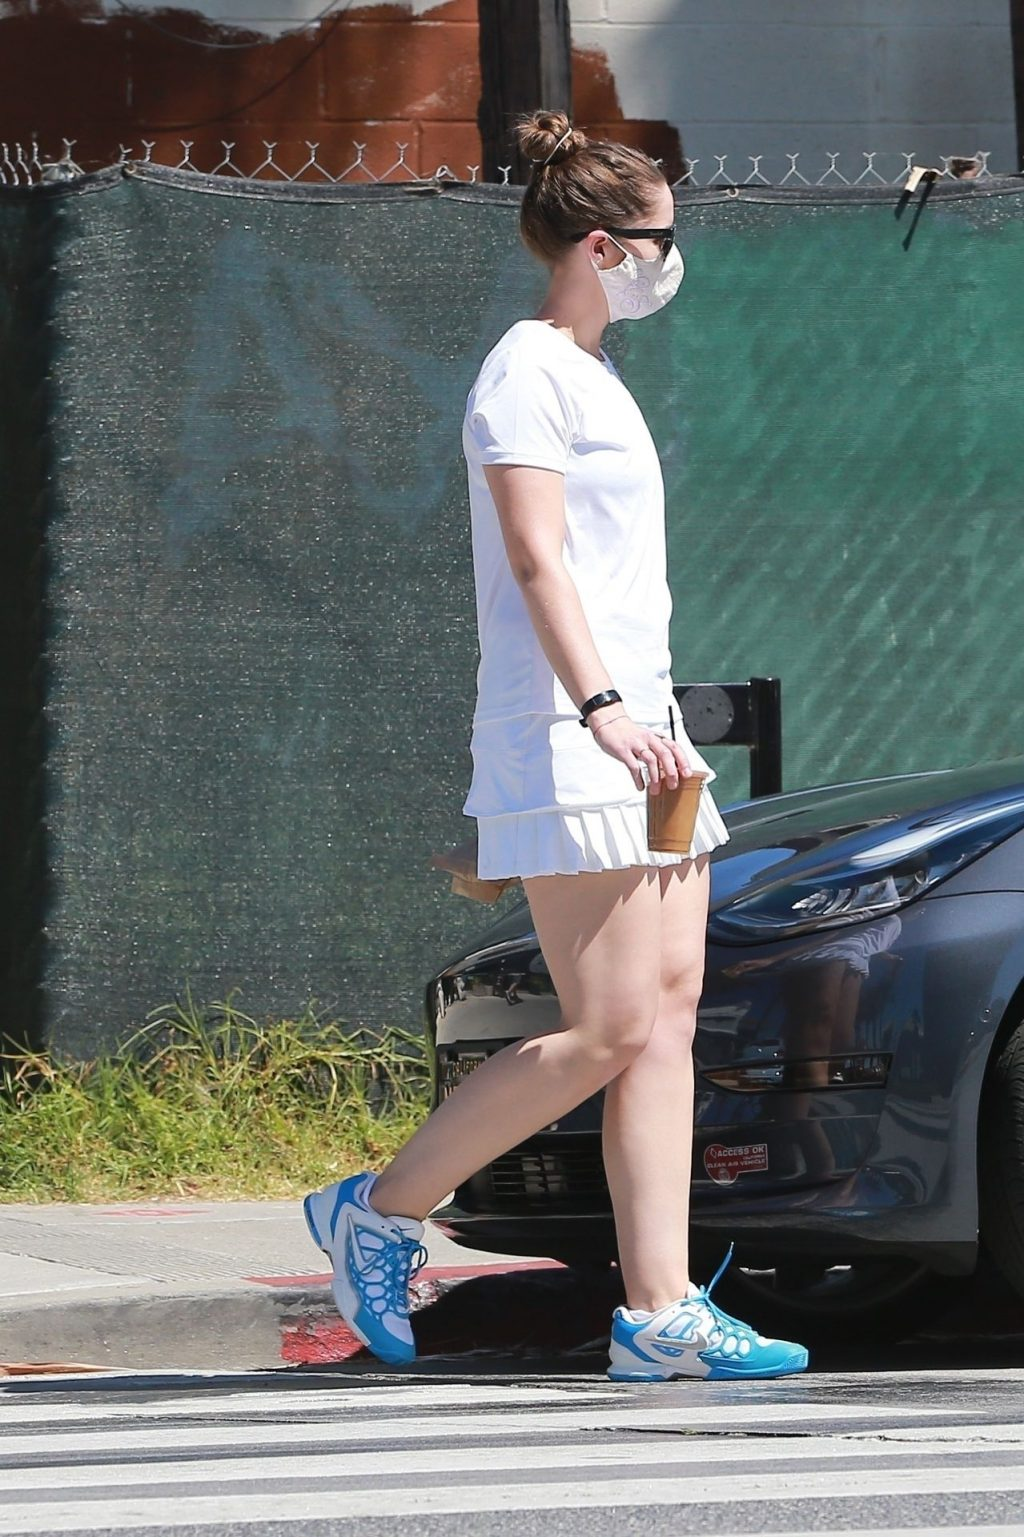 Christina Schwarzenegger Shows Off Her Toned Legs While on an Iced-coffee Run (19 Photos)